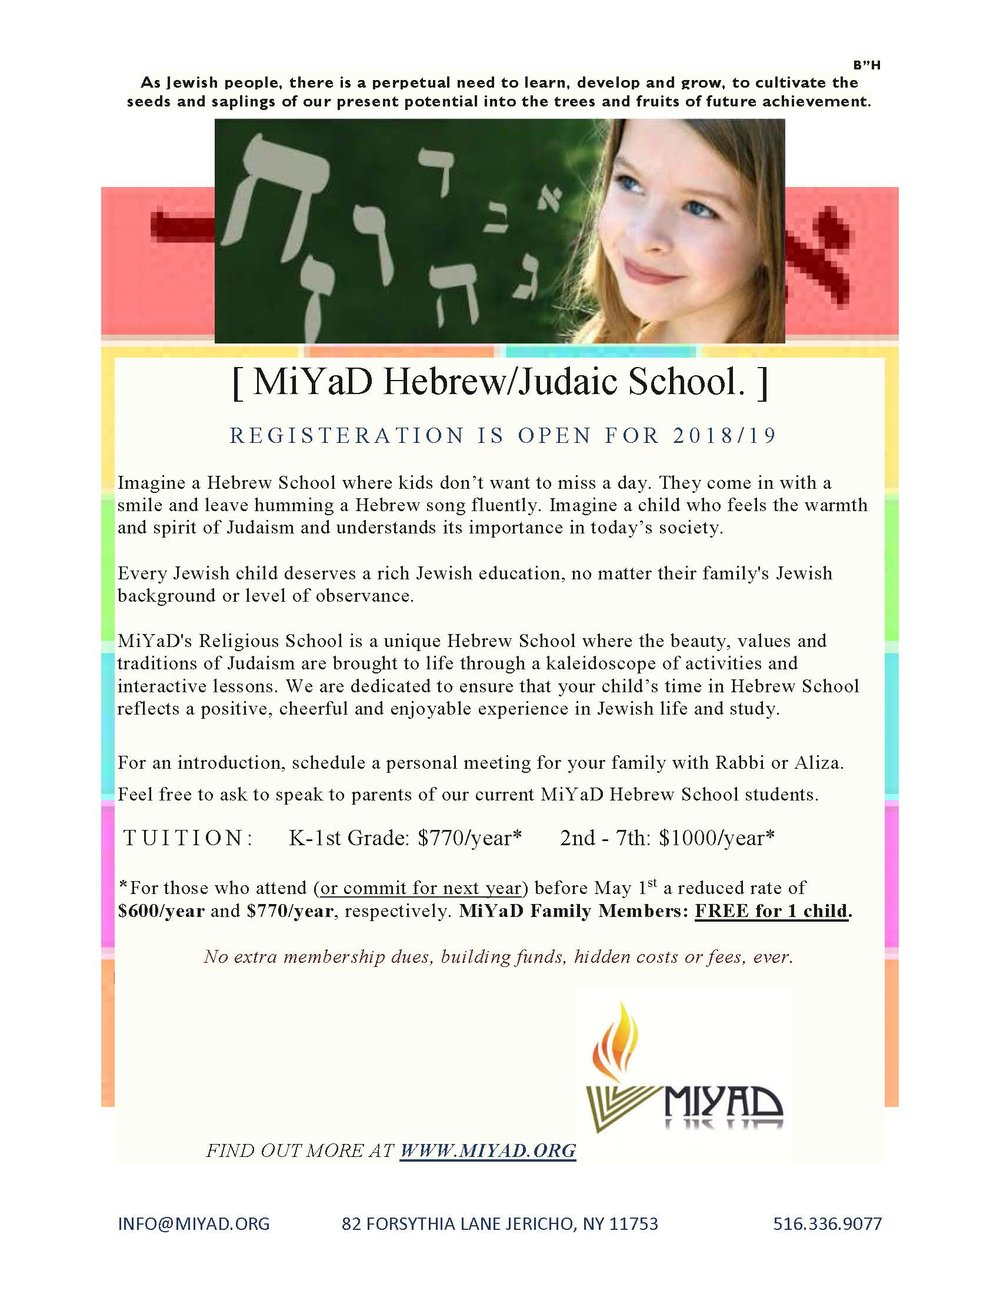 MiYaD Hebrew School FLYER.jpg